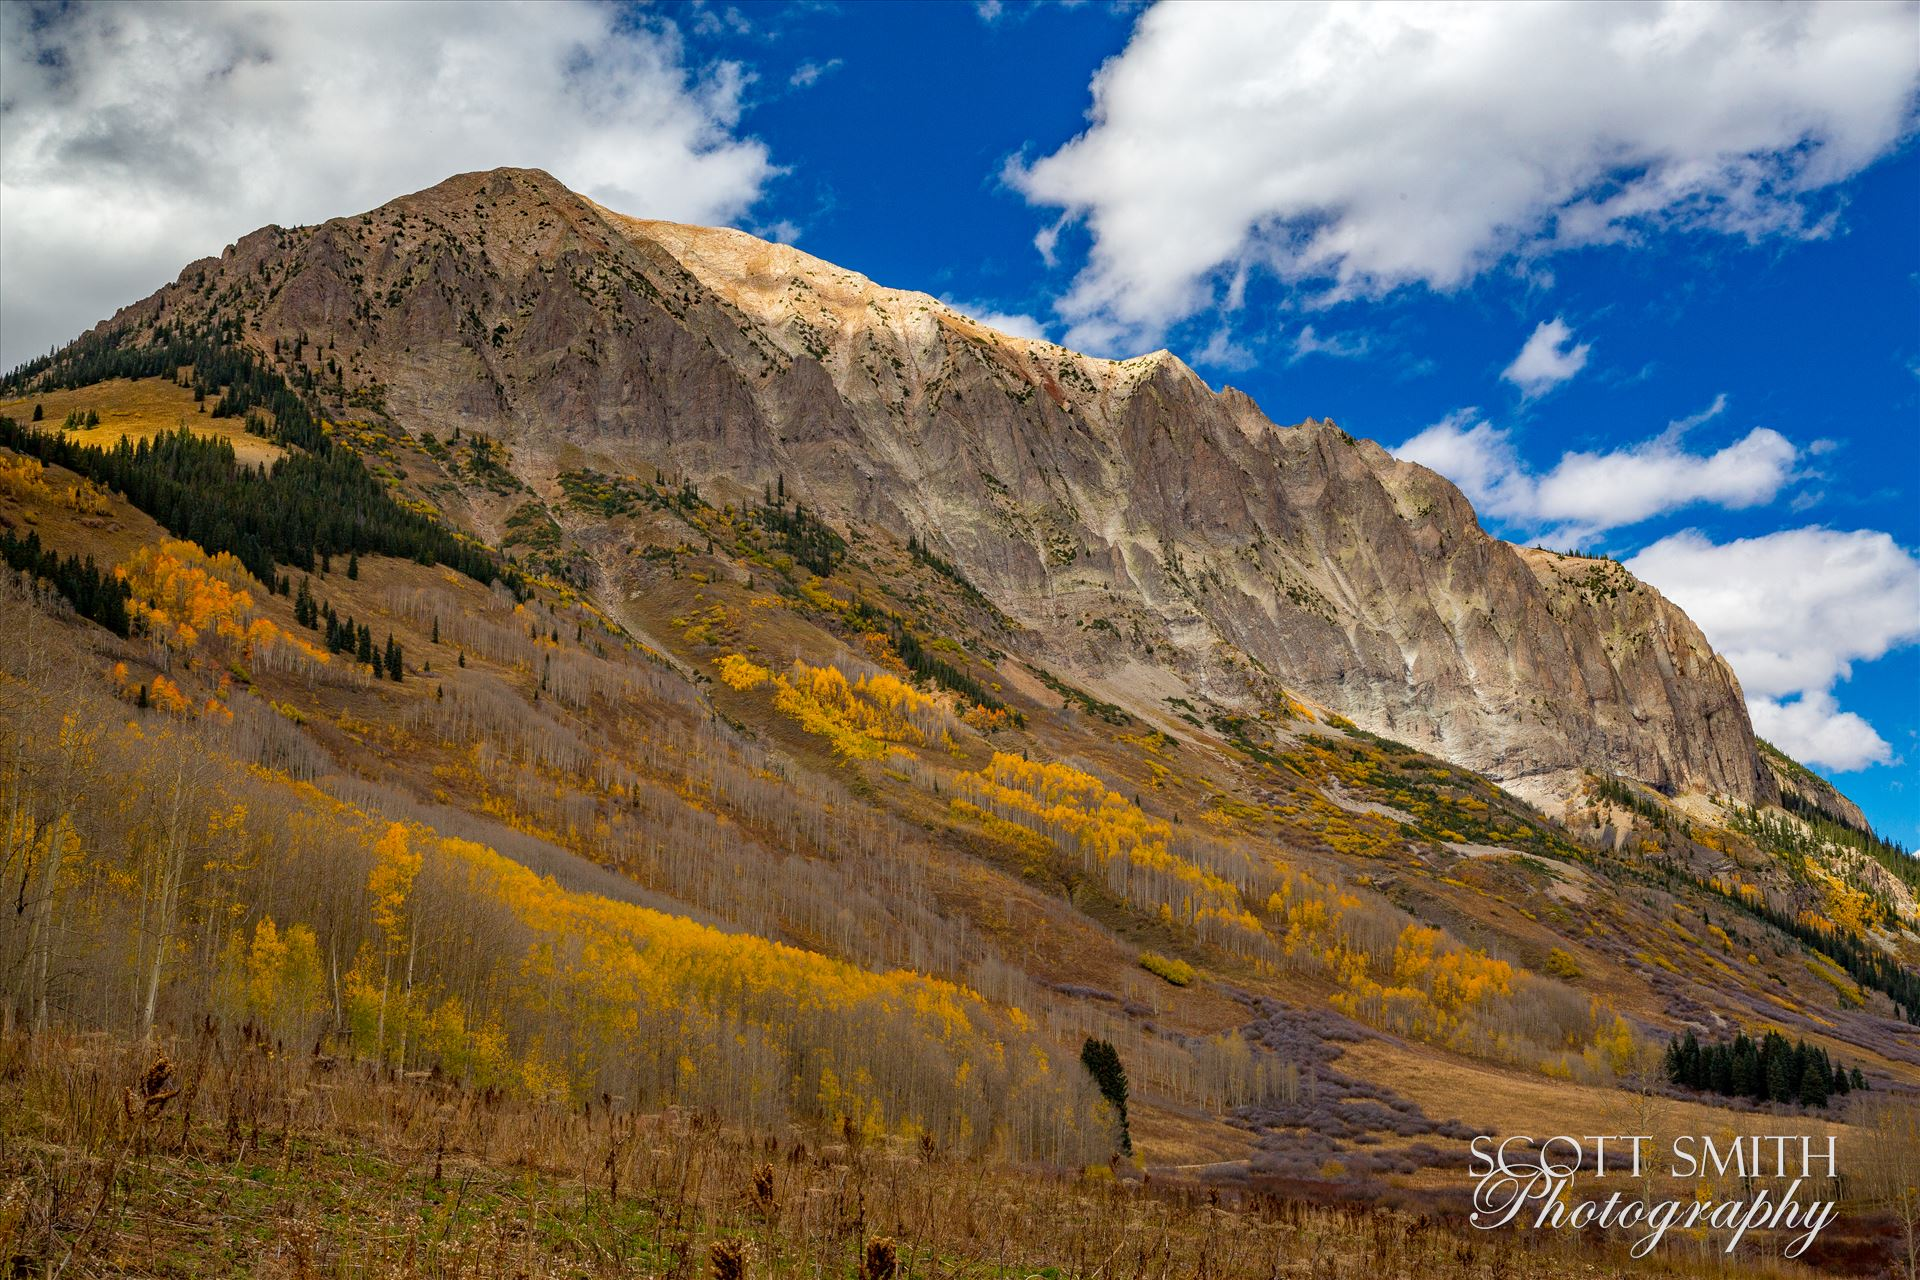 Gothic MountainFall colors on Gothic mountain, near Crested Butte Colorado.